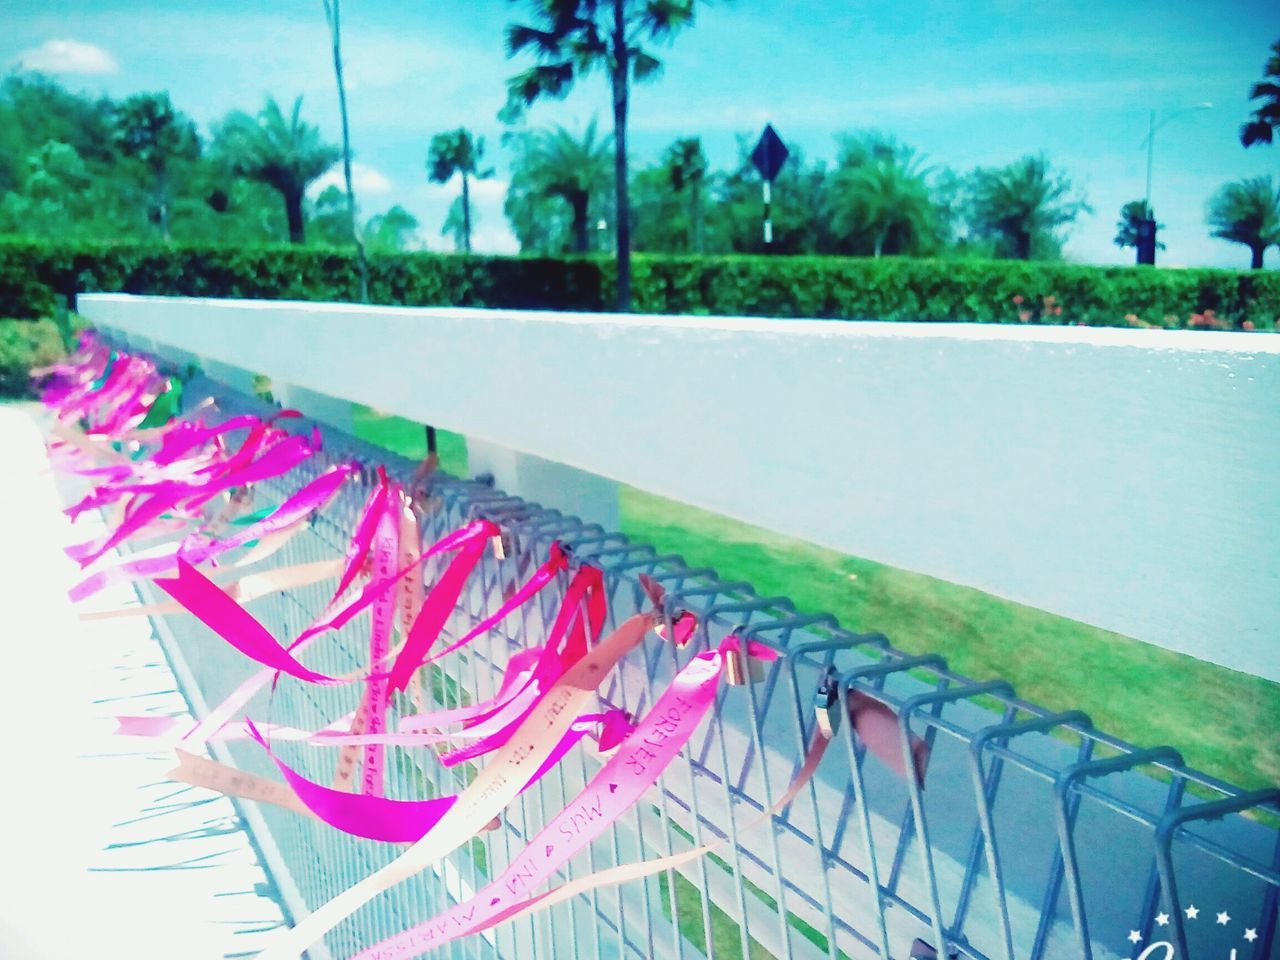 swimming pool, tree, outdoors, day, no people, pink color, nature, grass, palm tree, close-up, water, sky